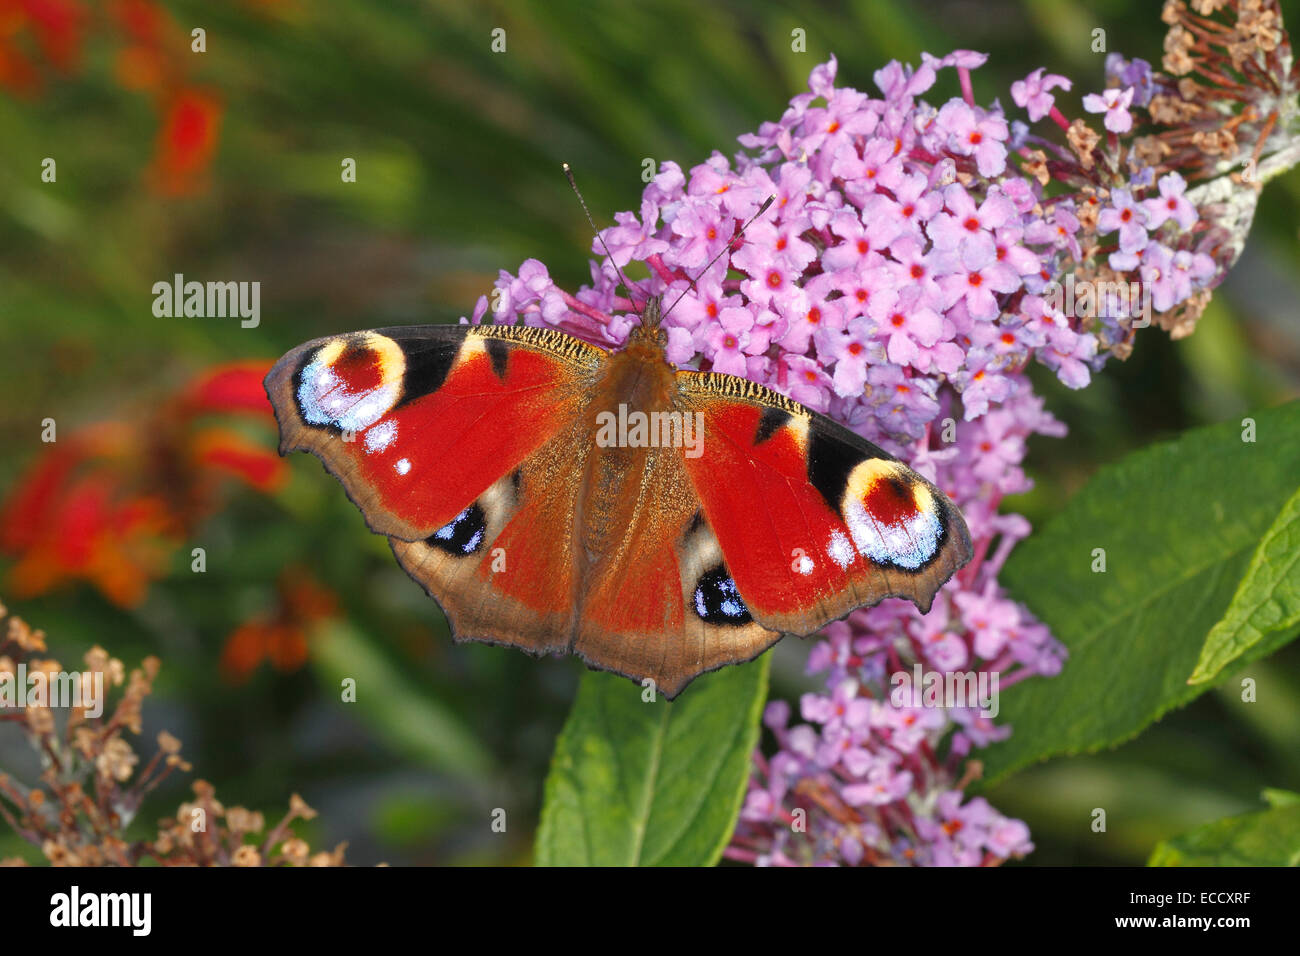 Peacock Butterfly (Inachia io) feeding on Buddleja flowers in garden Cheshire UK August 2473 - Stock Image